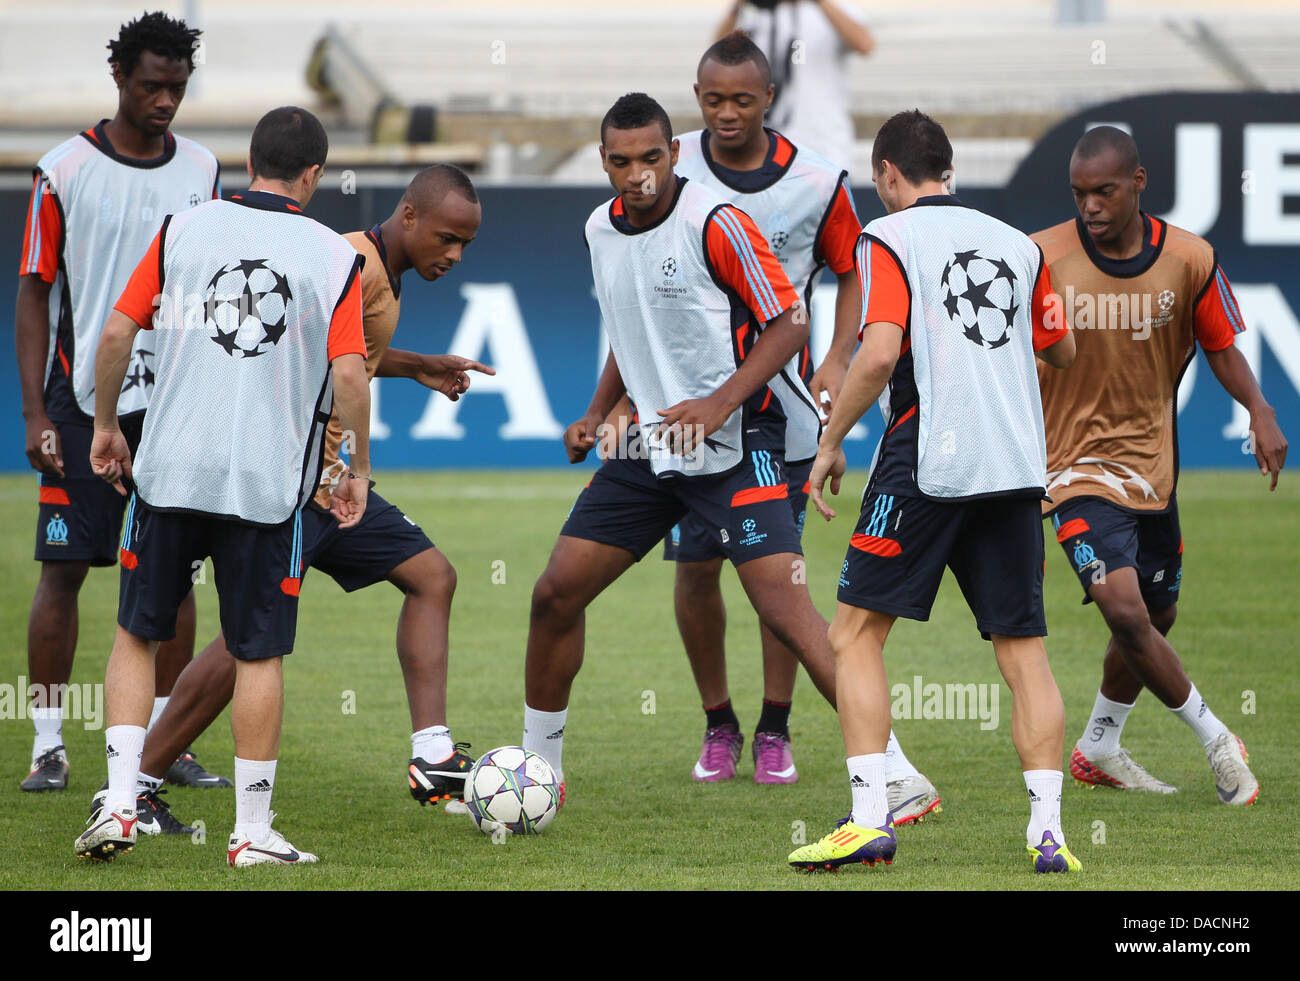 Omrani (M) of Olympique Marseille attends a training session at the Stade Velodrome in Marseille, France, 27 September - Stock Image